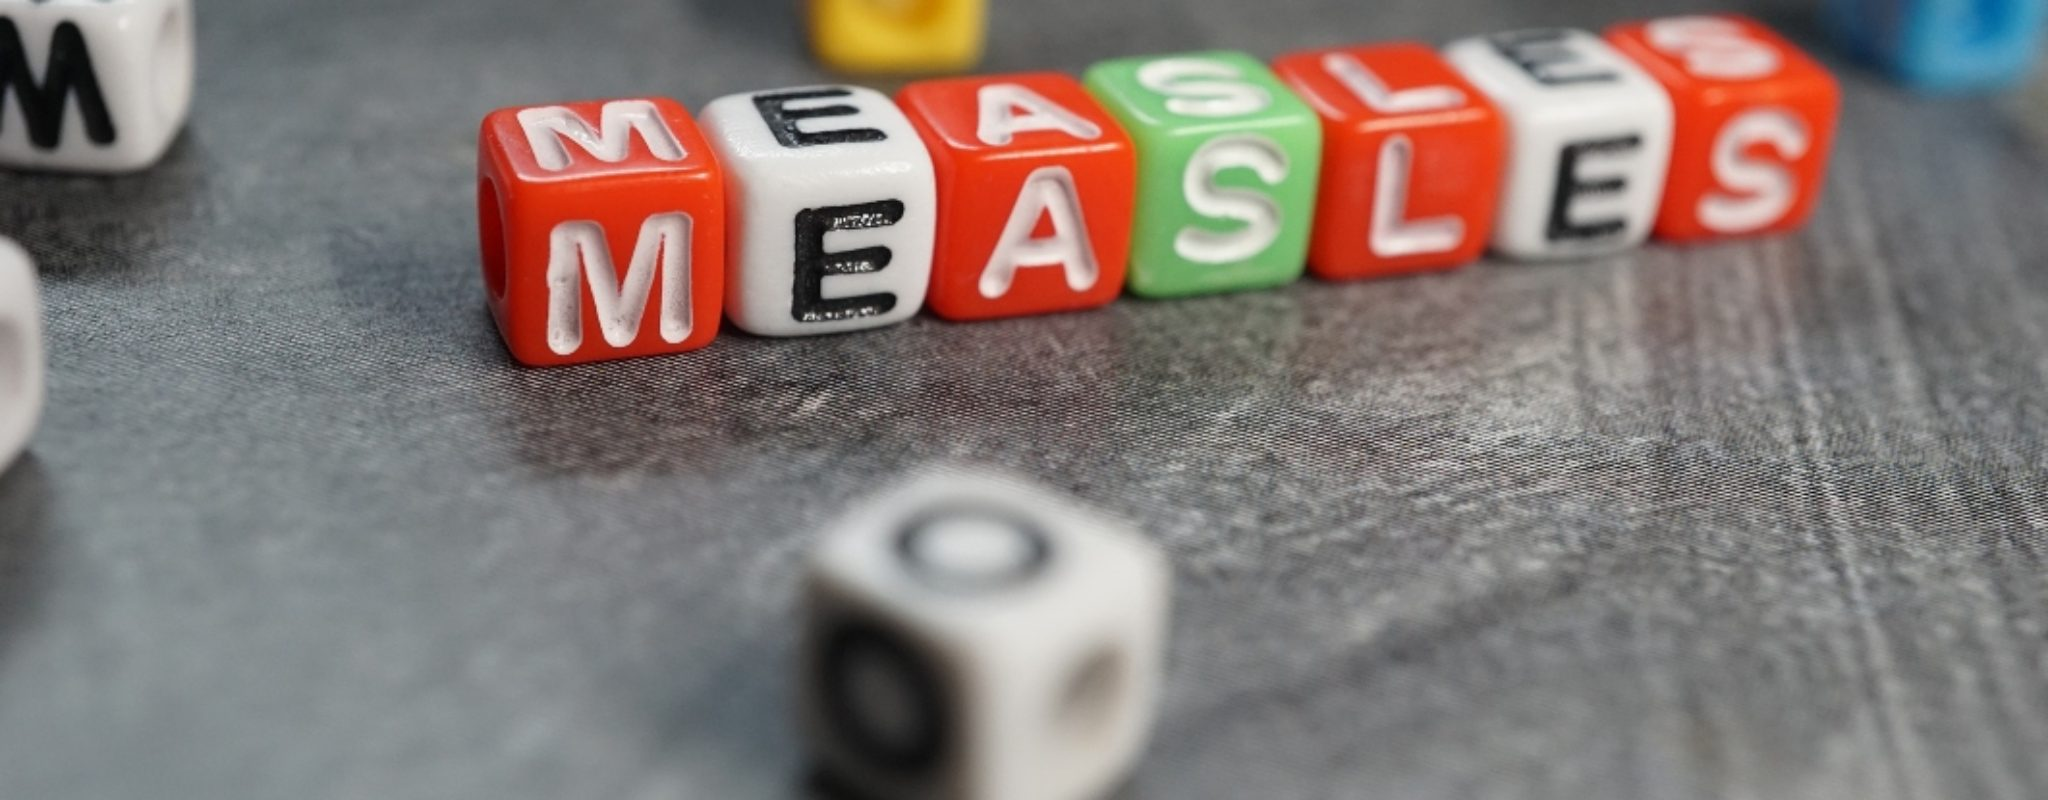 Measles: What You Need to Know, Powered by Nemours Children's Health System